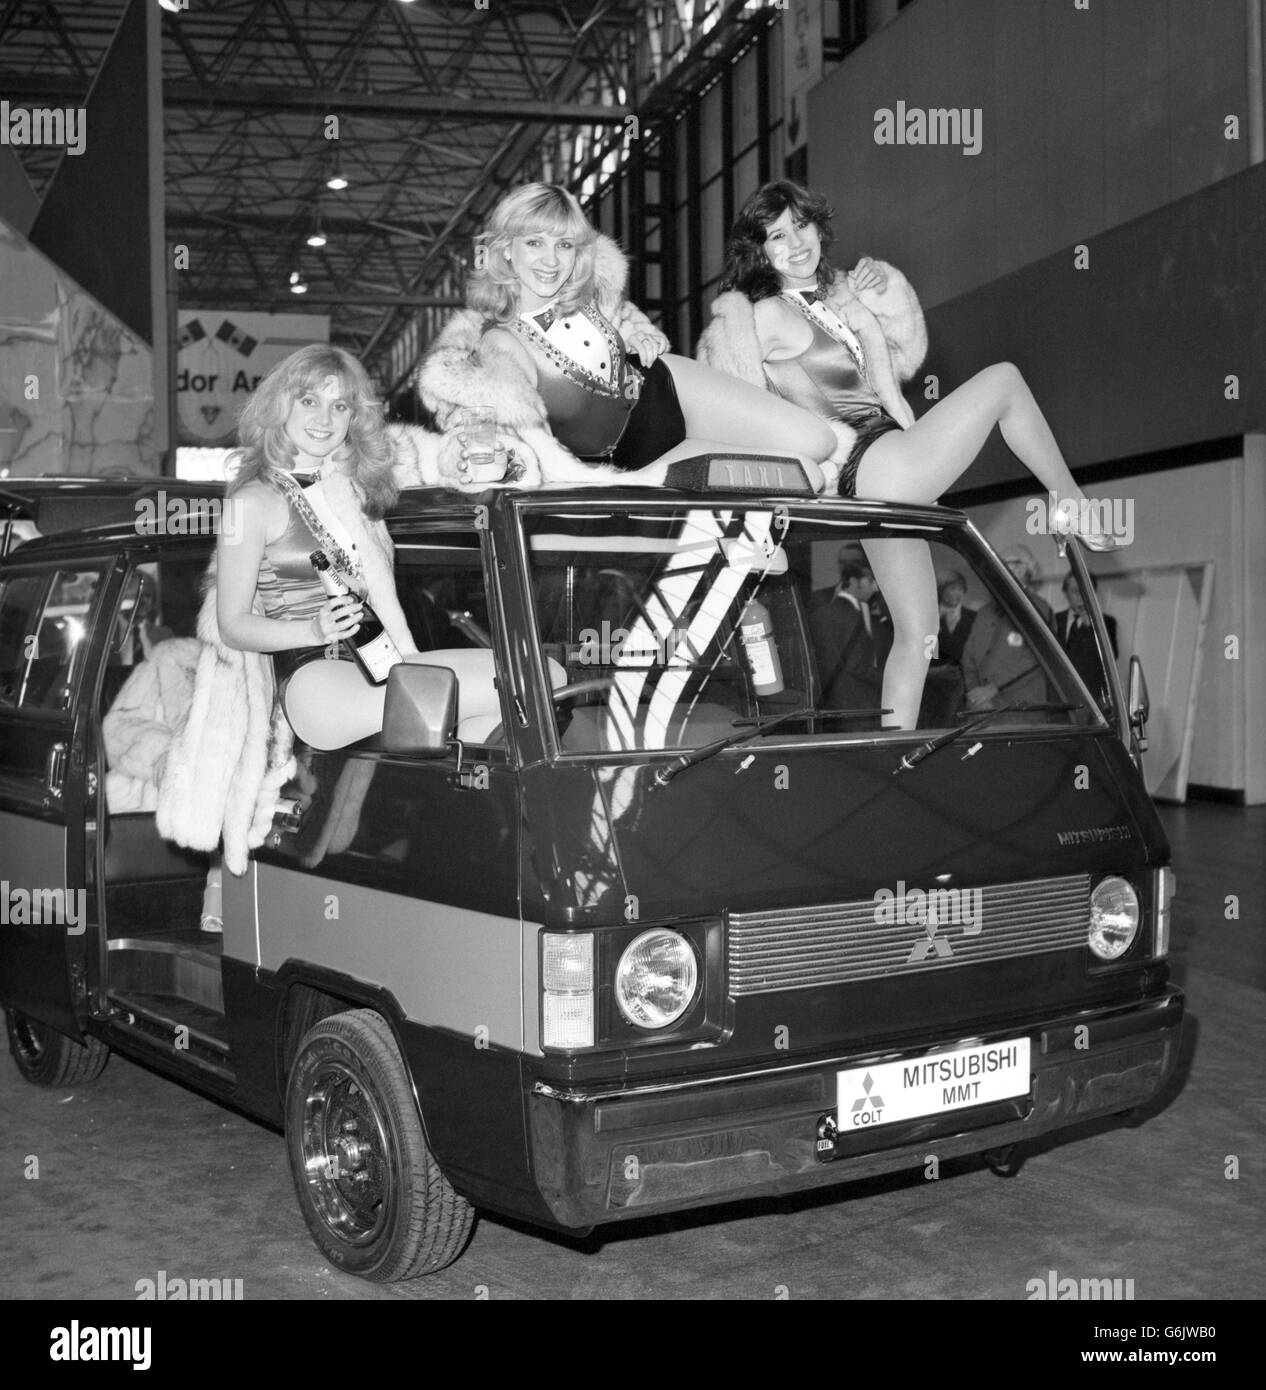 Motoring - 1980 International Motor Show - New Style Taxi Cab - Press Preview - National Exhibition Centre, Birmingham - Stock Image